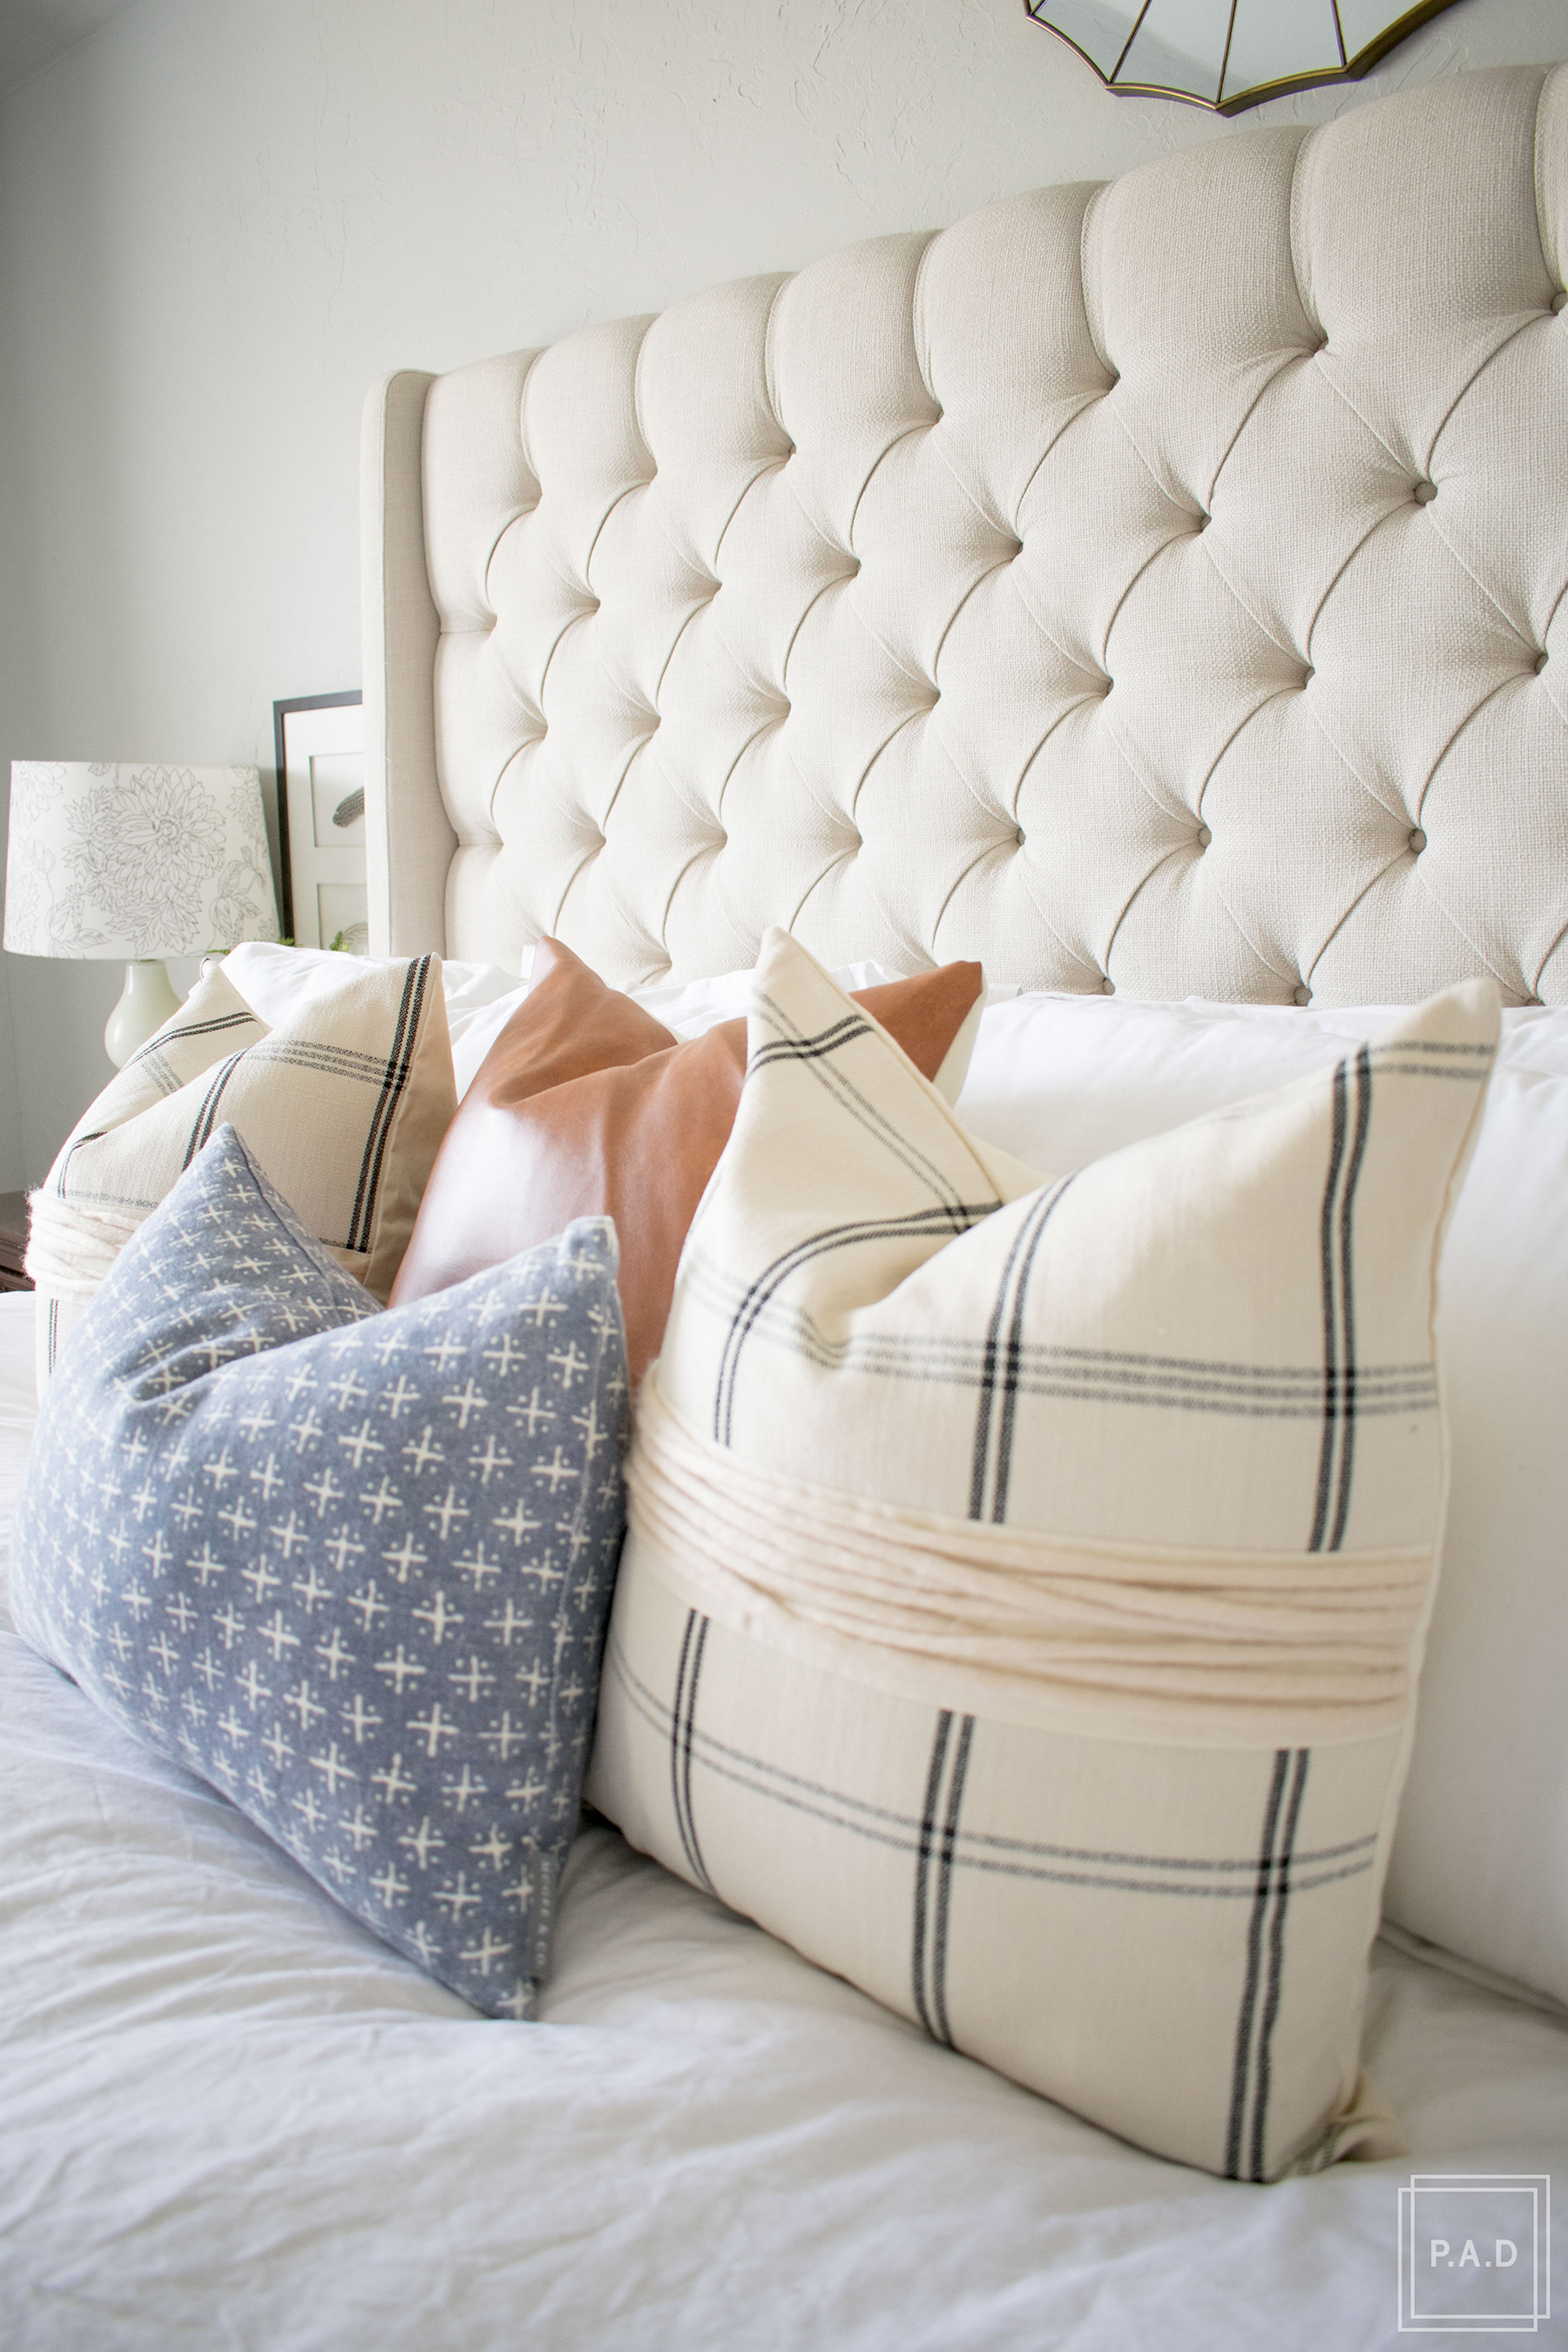 Project-allen-designs-how-to-mix-throw-pillows-like-a-boss